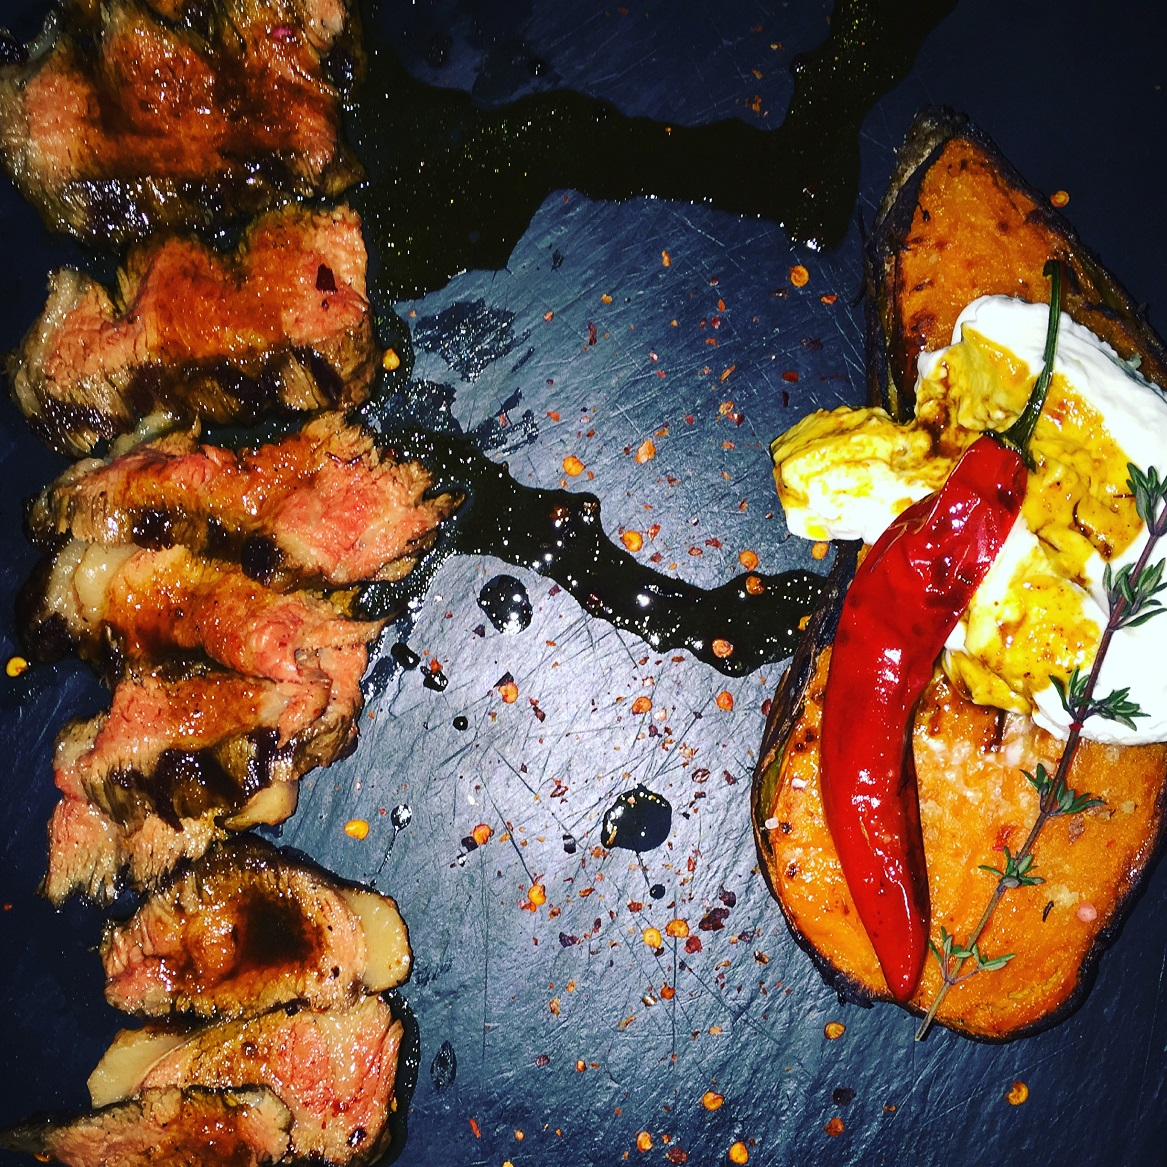 Ultra-tender picanha with sweet potato & cream cheese with truffle at 48 URBAN GARDEN